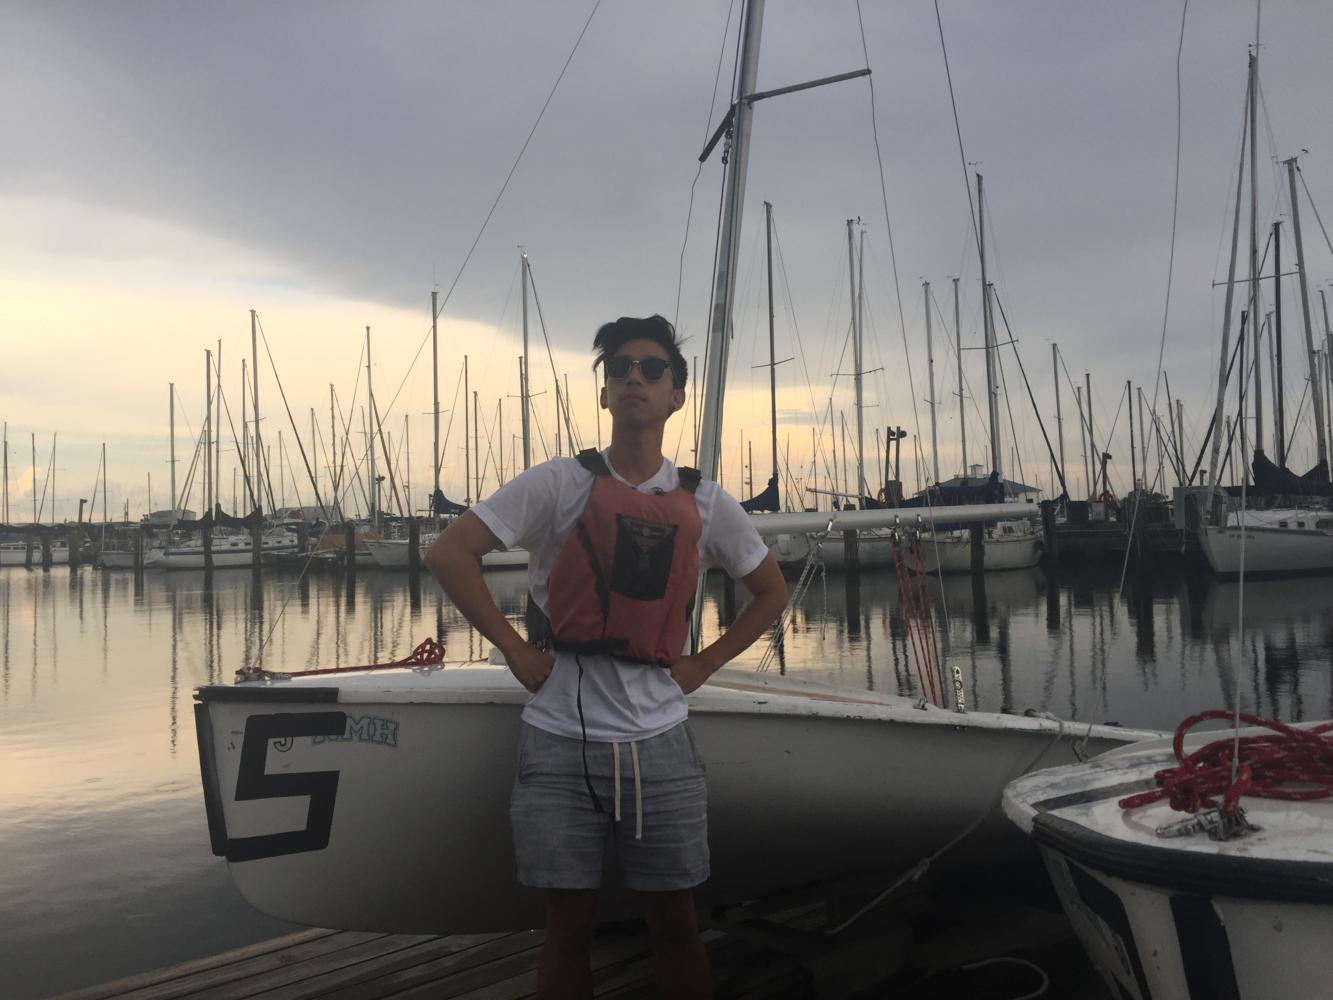 Sports editor JC Canicosa stands in a satirically heroic pose, ready to take on what Lake Pontchartrain throws at him. Photo credit: Sophie Duffy